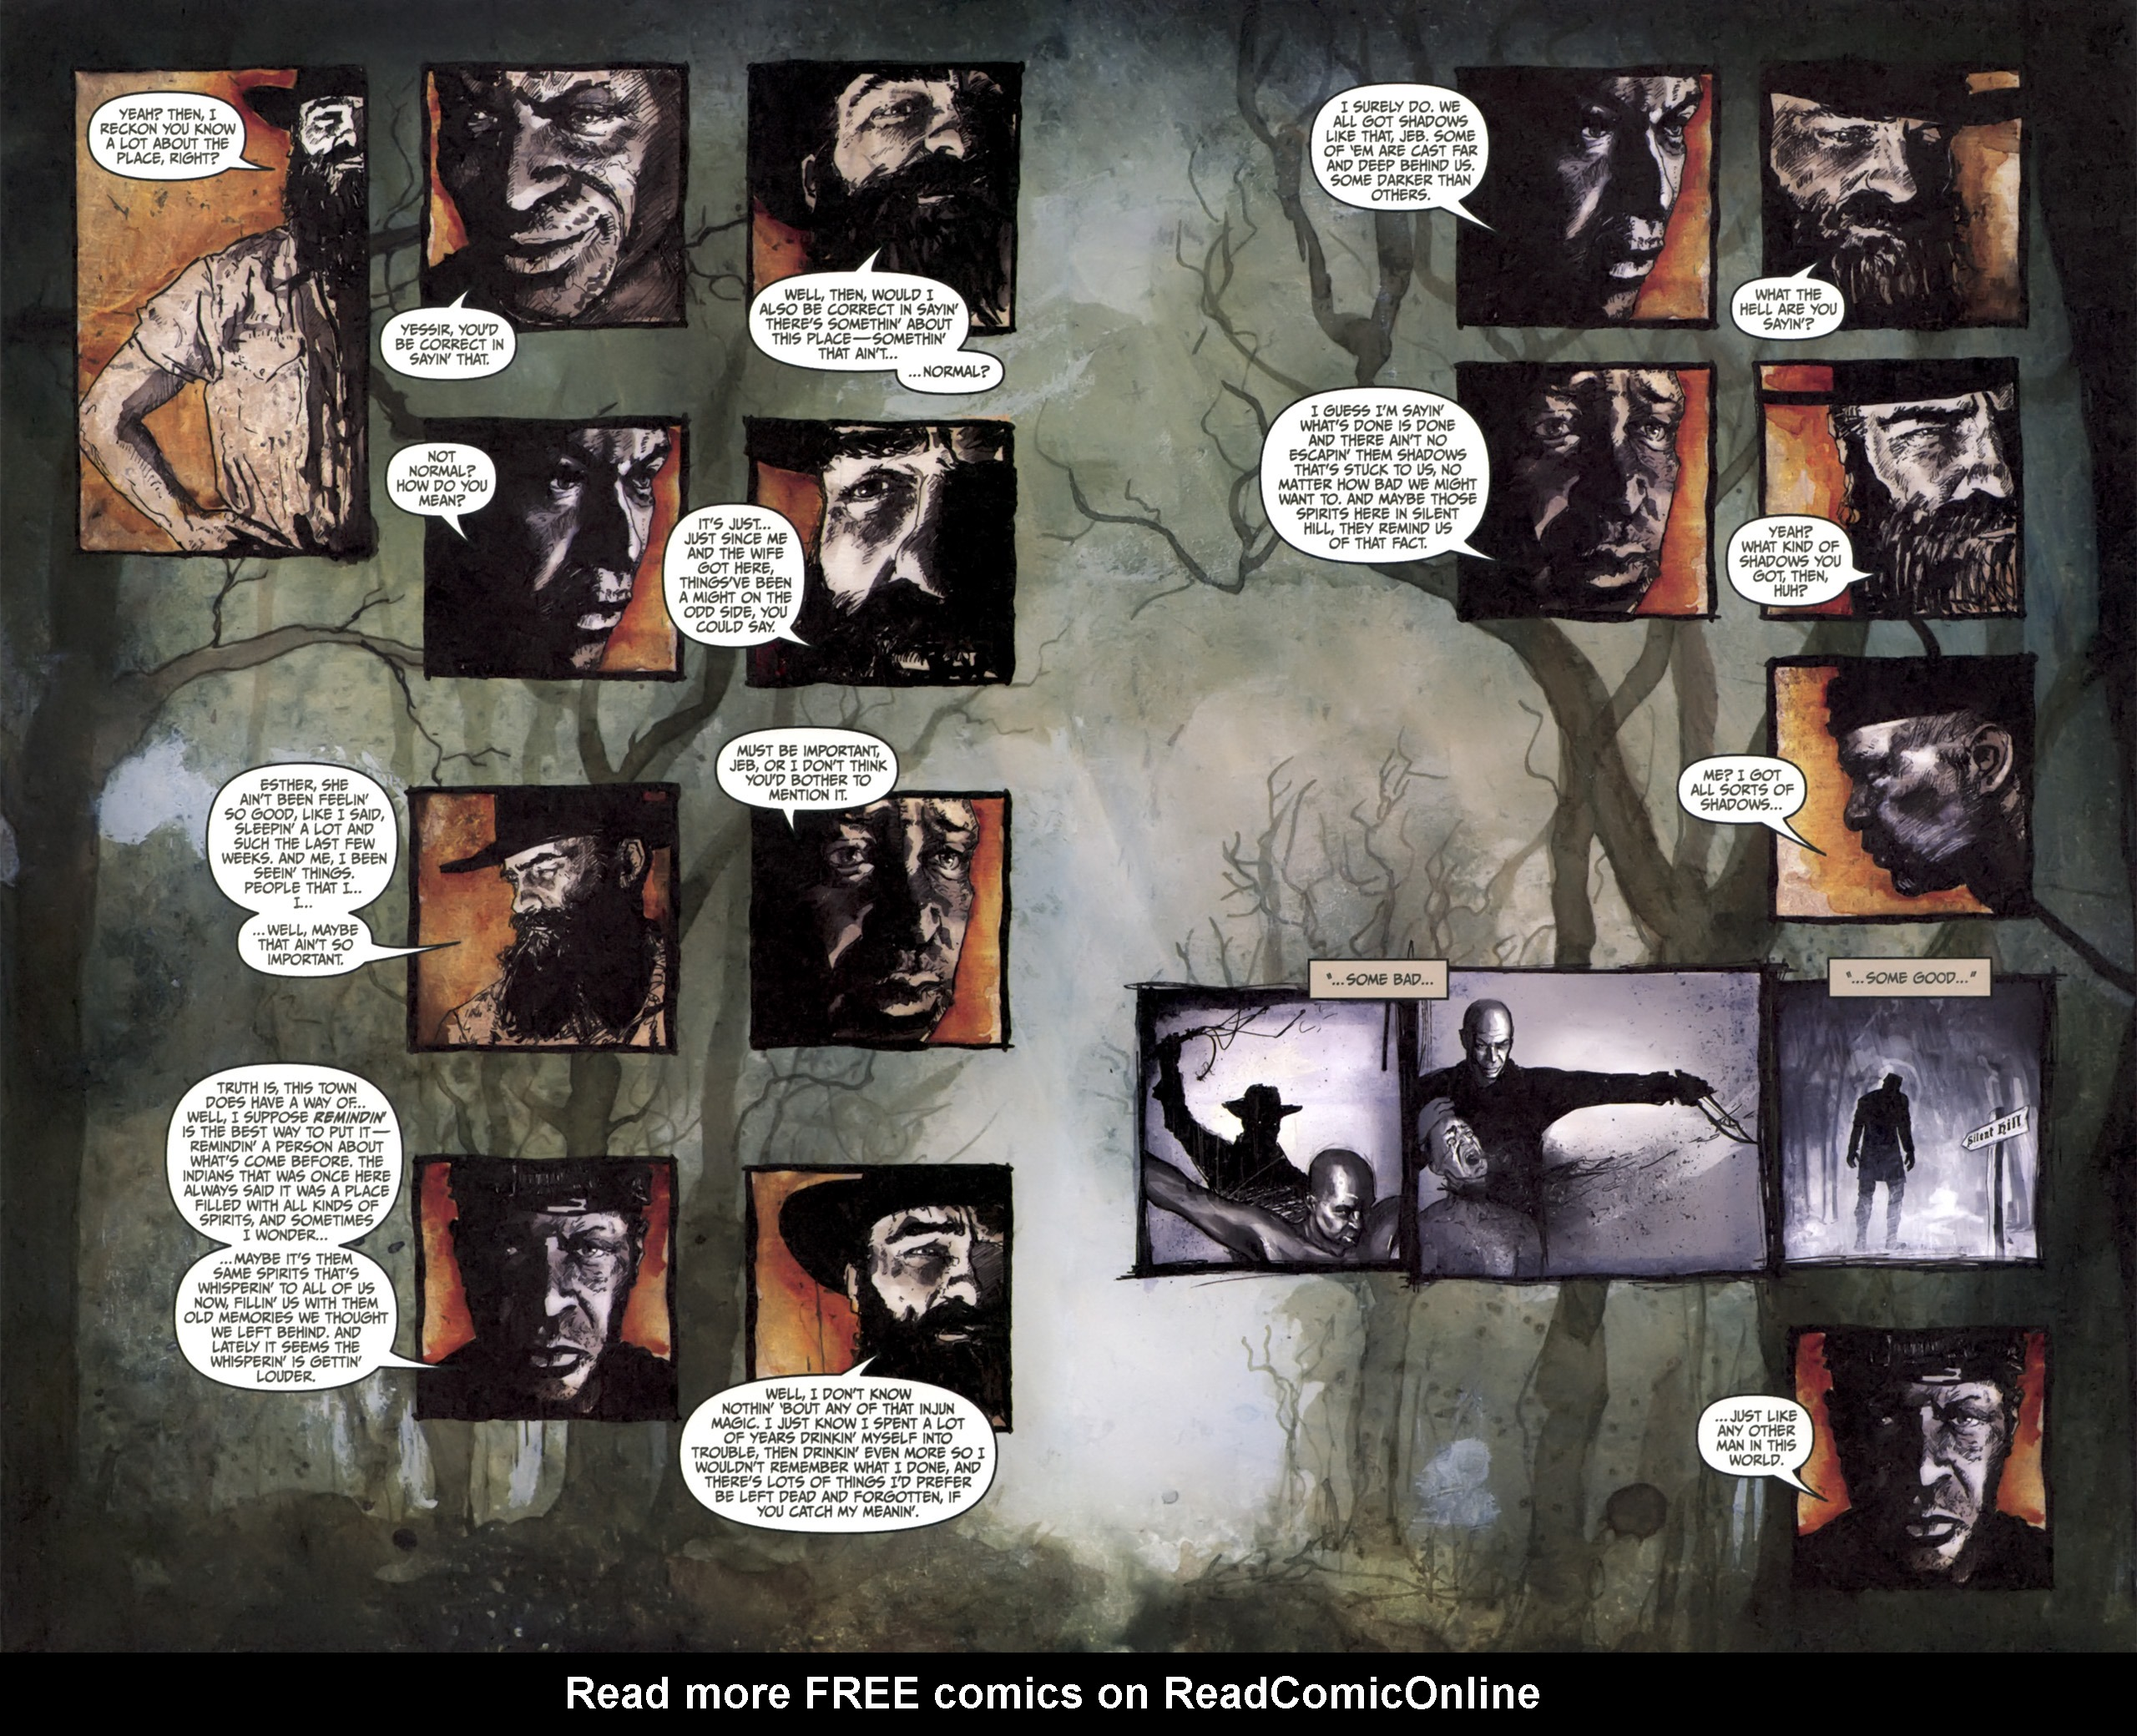 Read online Silent Hill: Past Life comic -  Issue #3 - 10